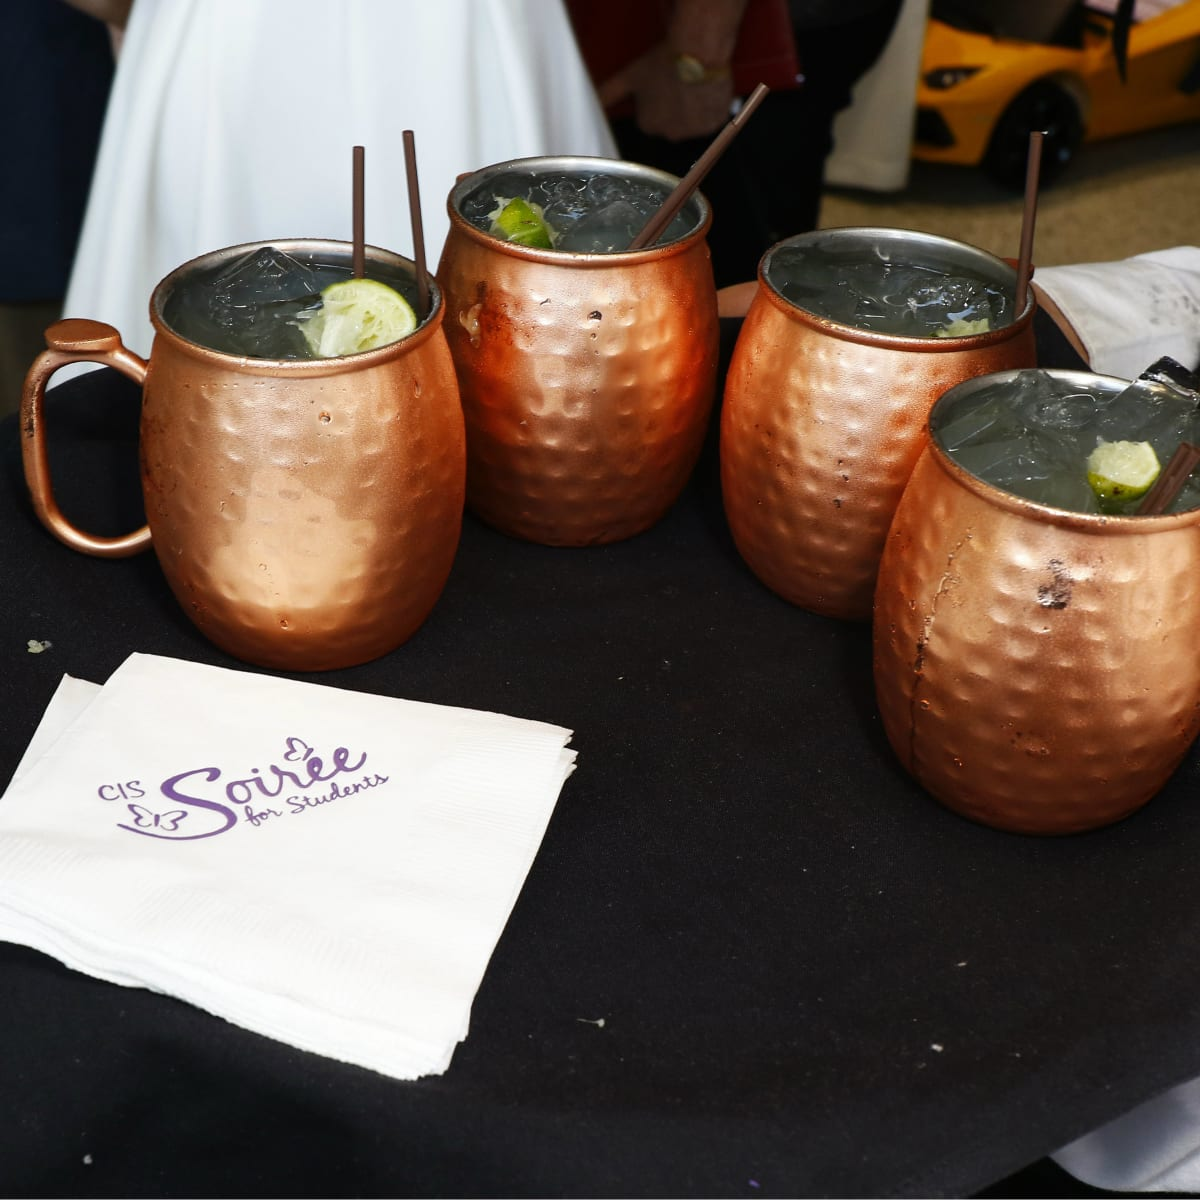 Garden Mules with event logo napkins